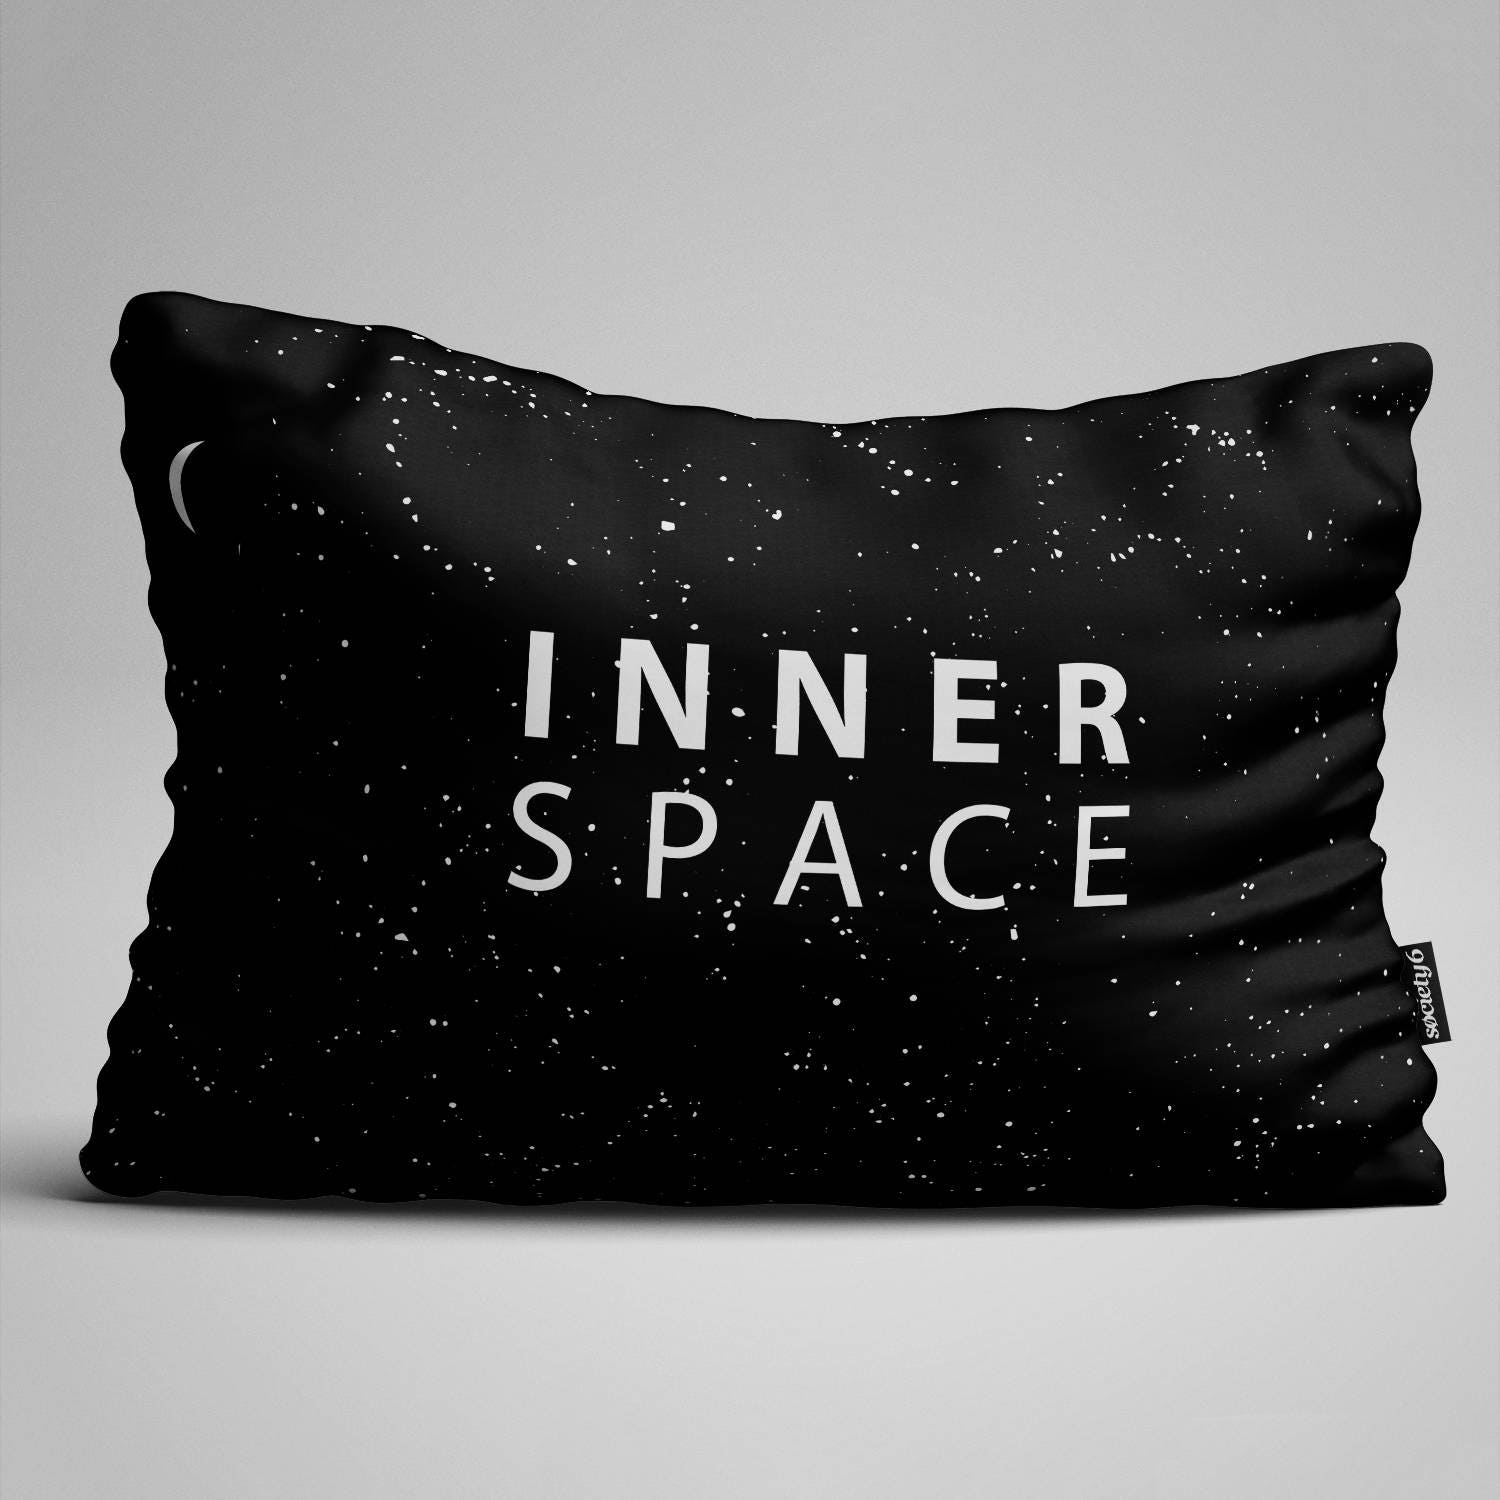 inner space words lumbar pillow throw pillow black and white. Black Bedroom Furniture Sets. Home Design Ideas